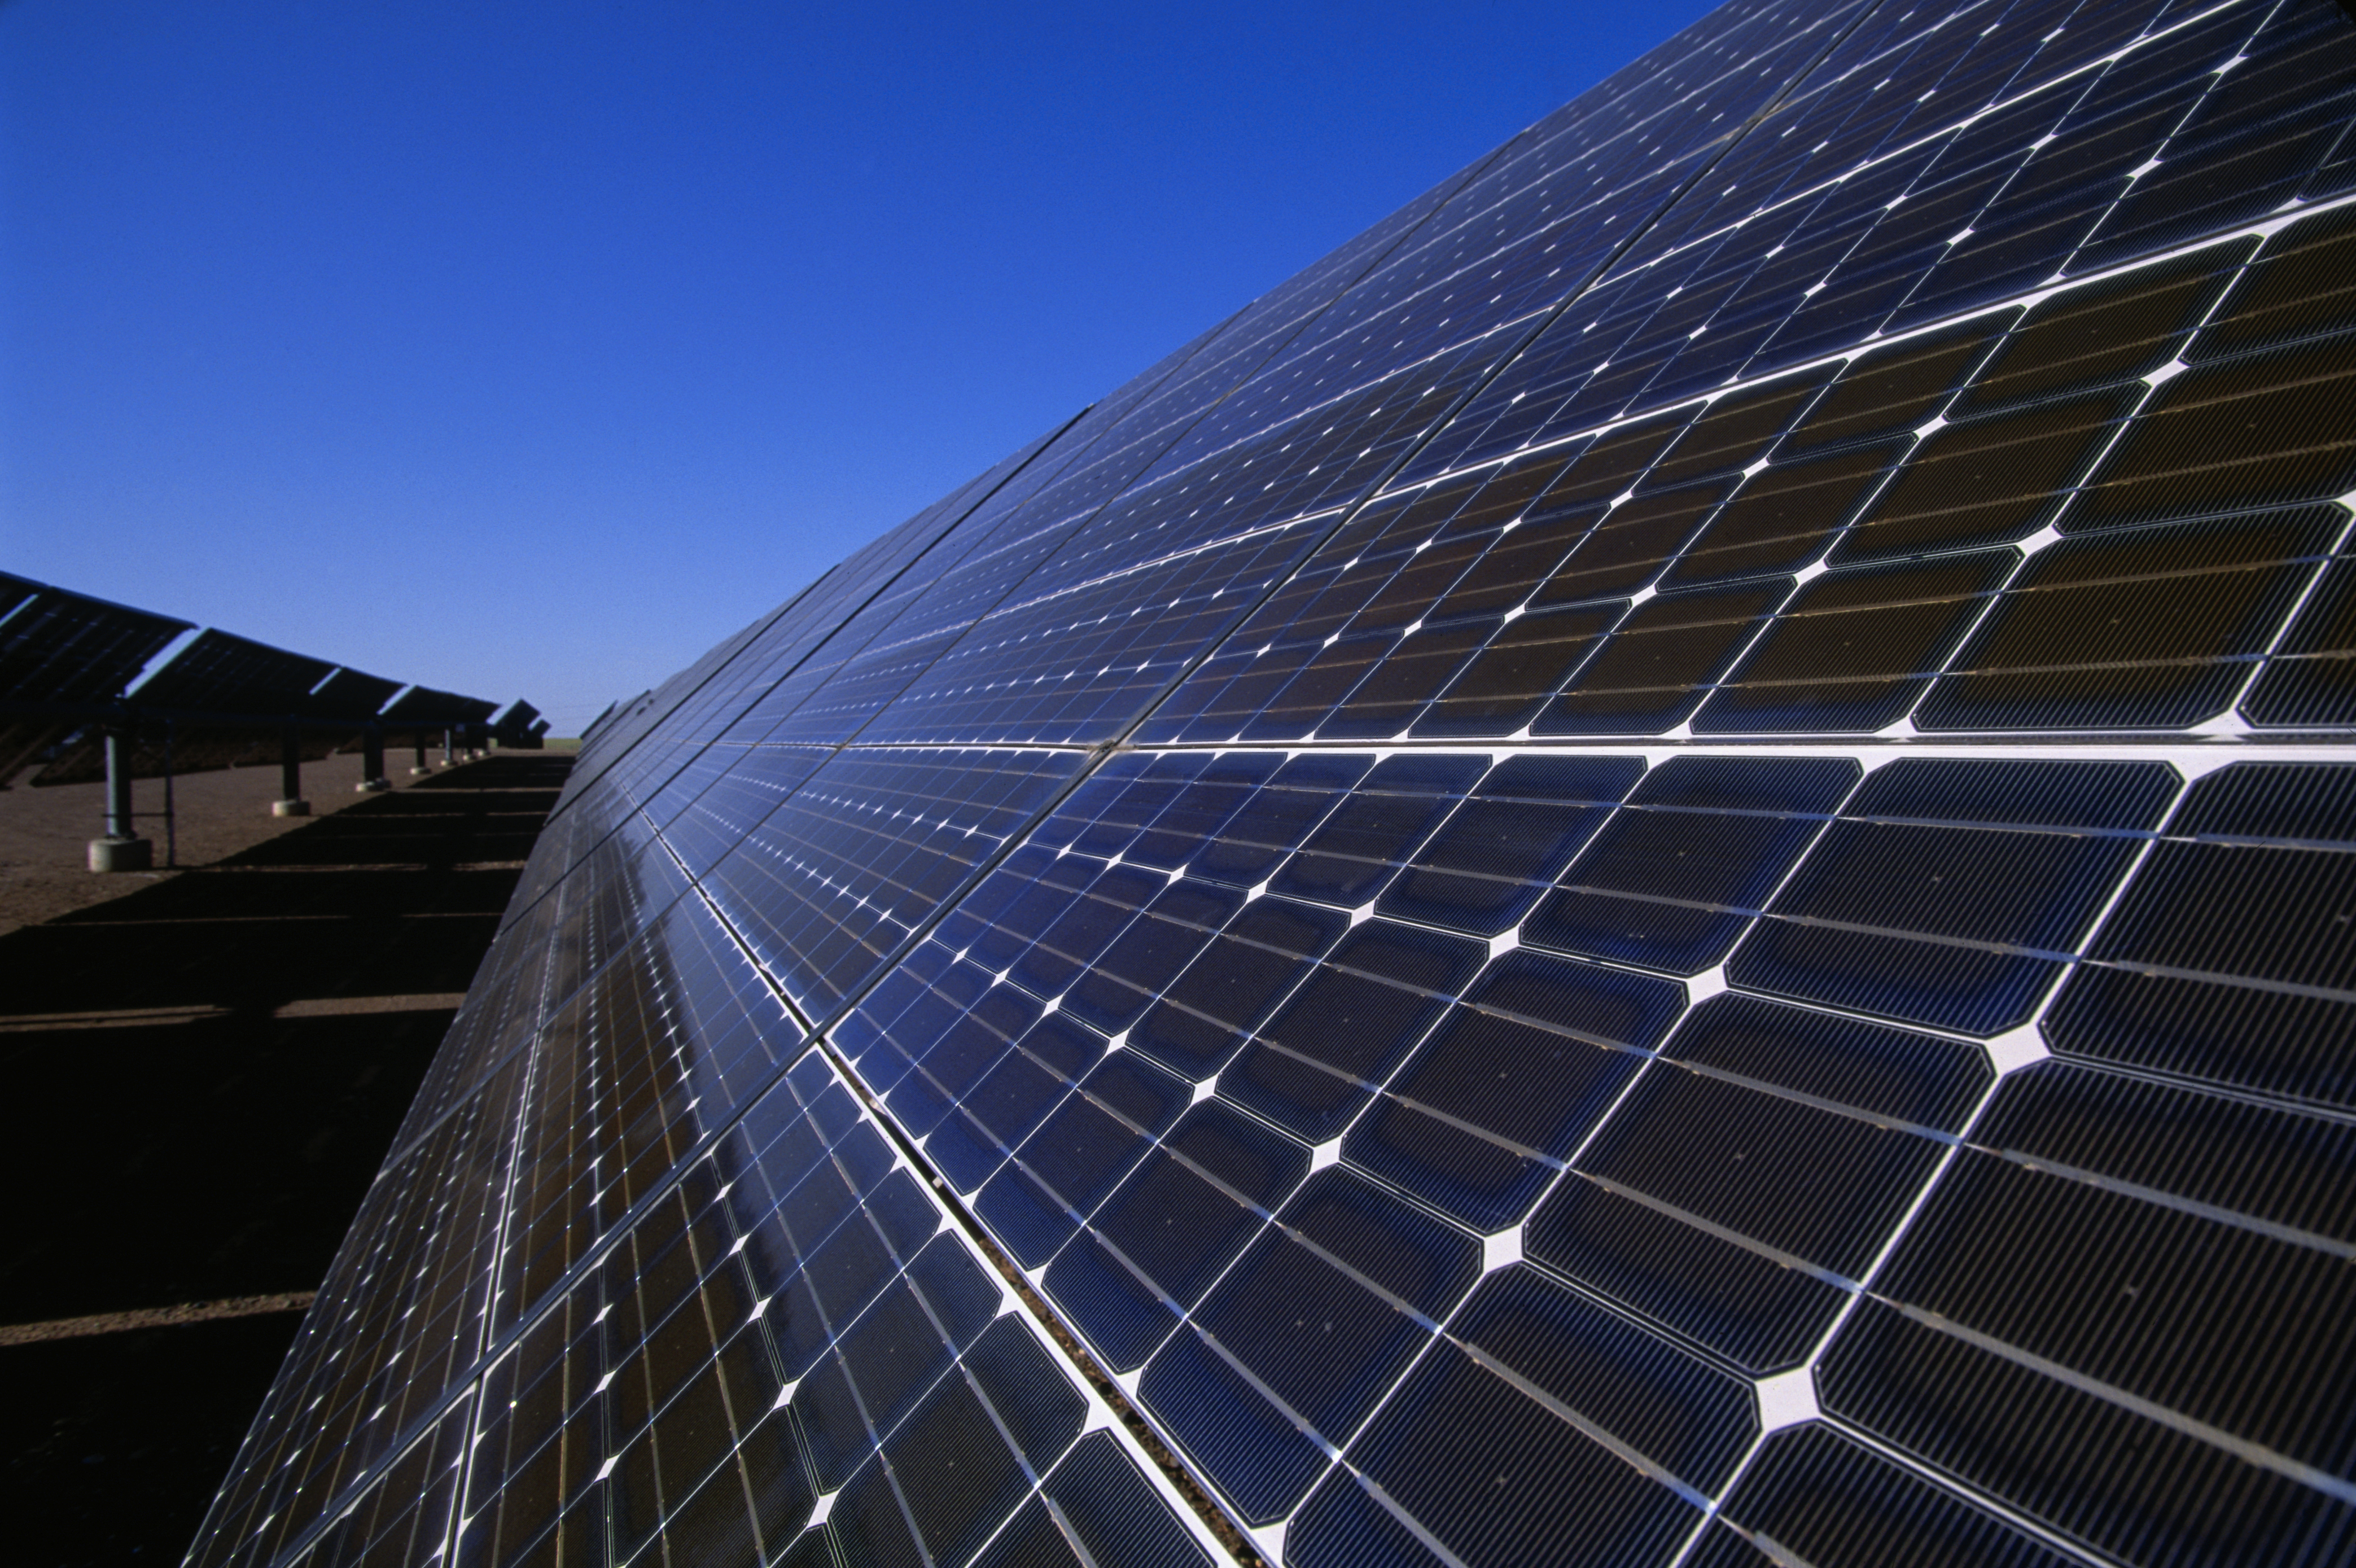 Solar energy panels now dominate the site of Rancho Seco, a decommissioned nuclear power plant.